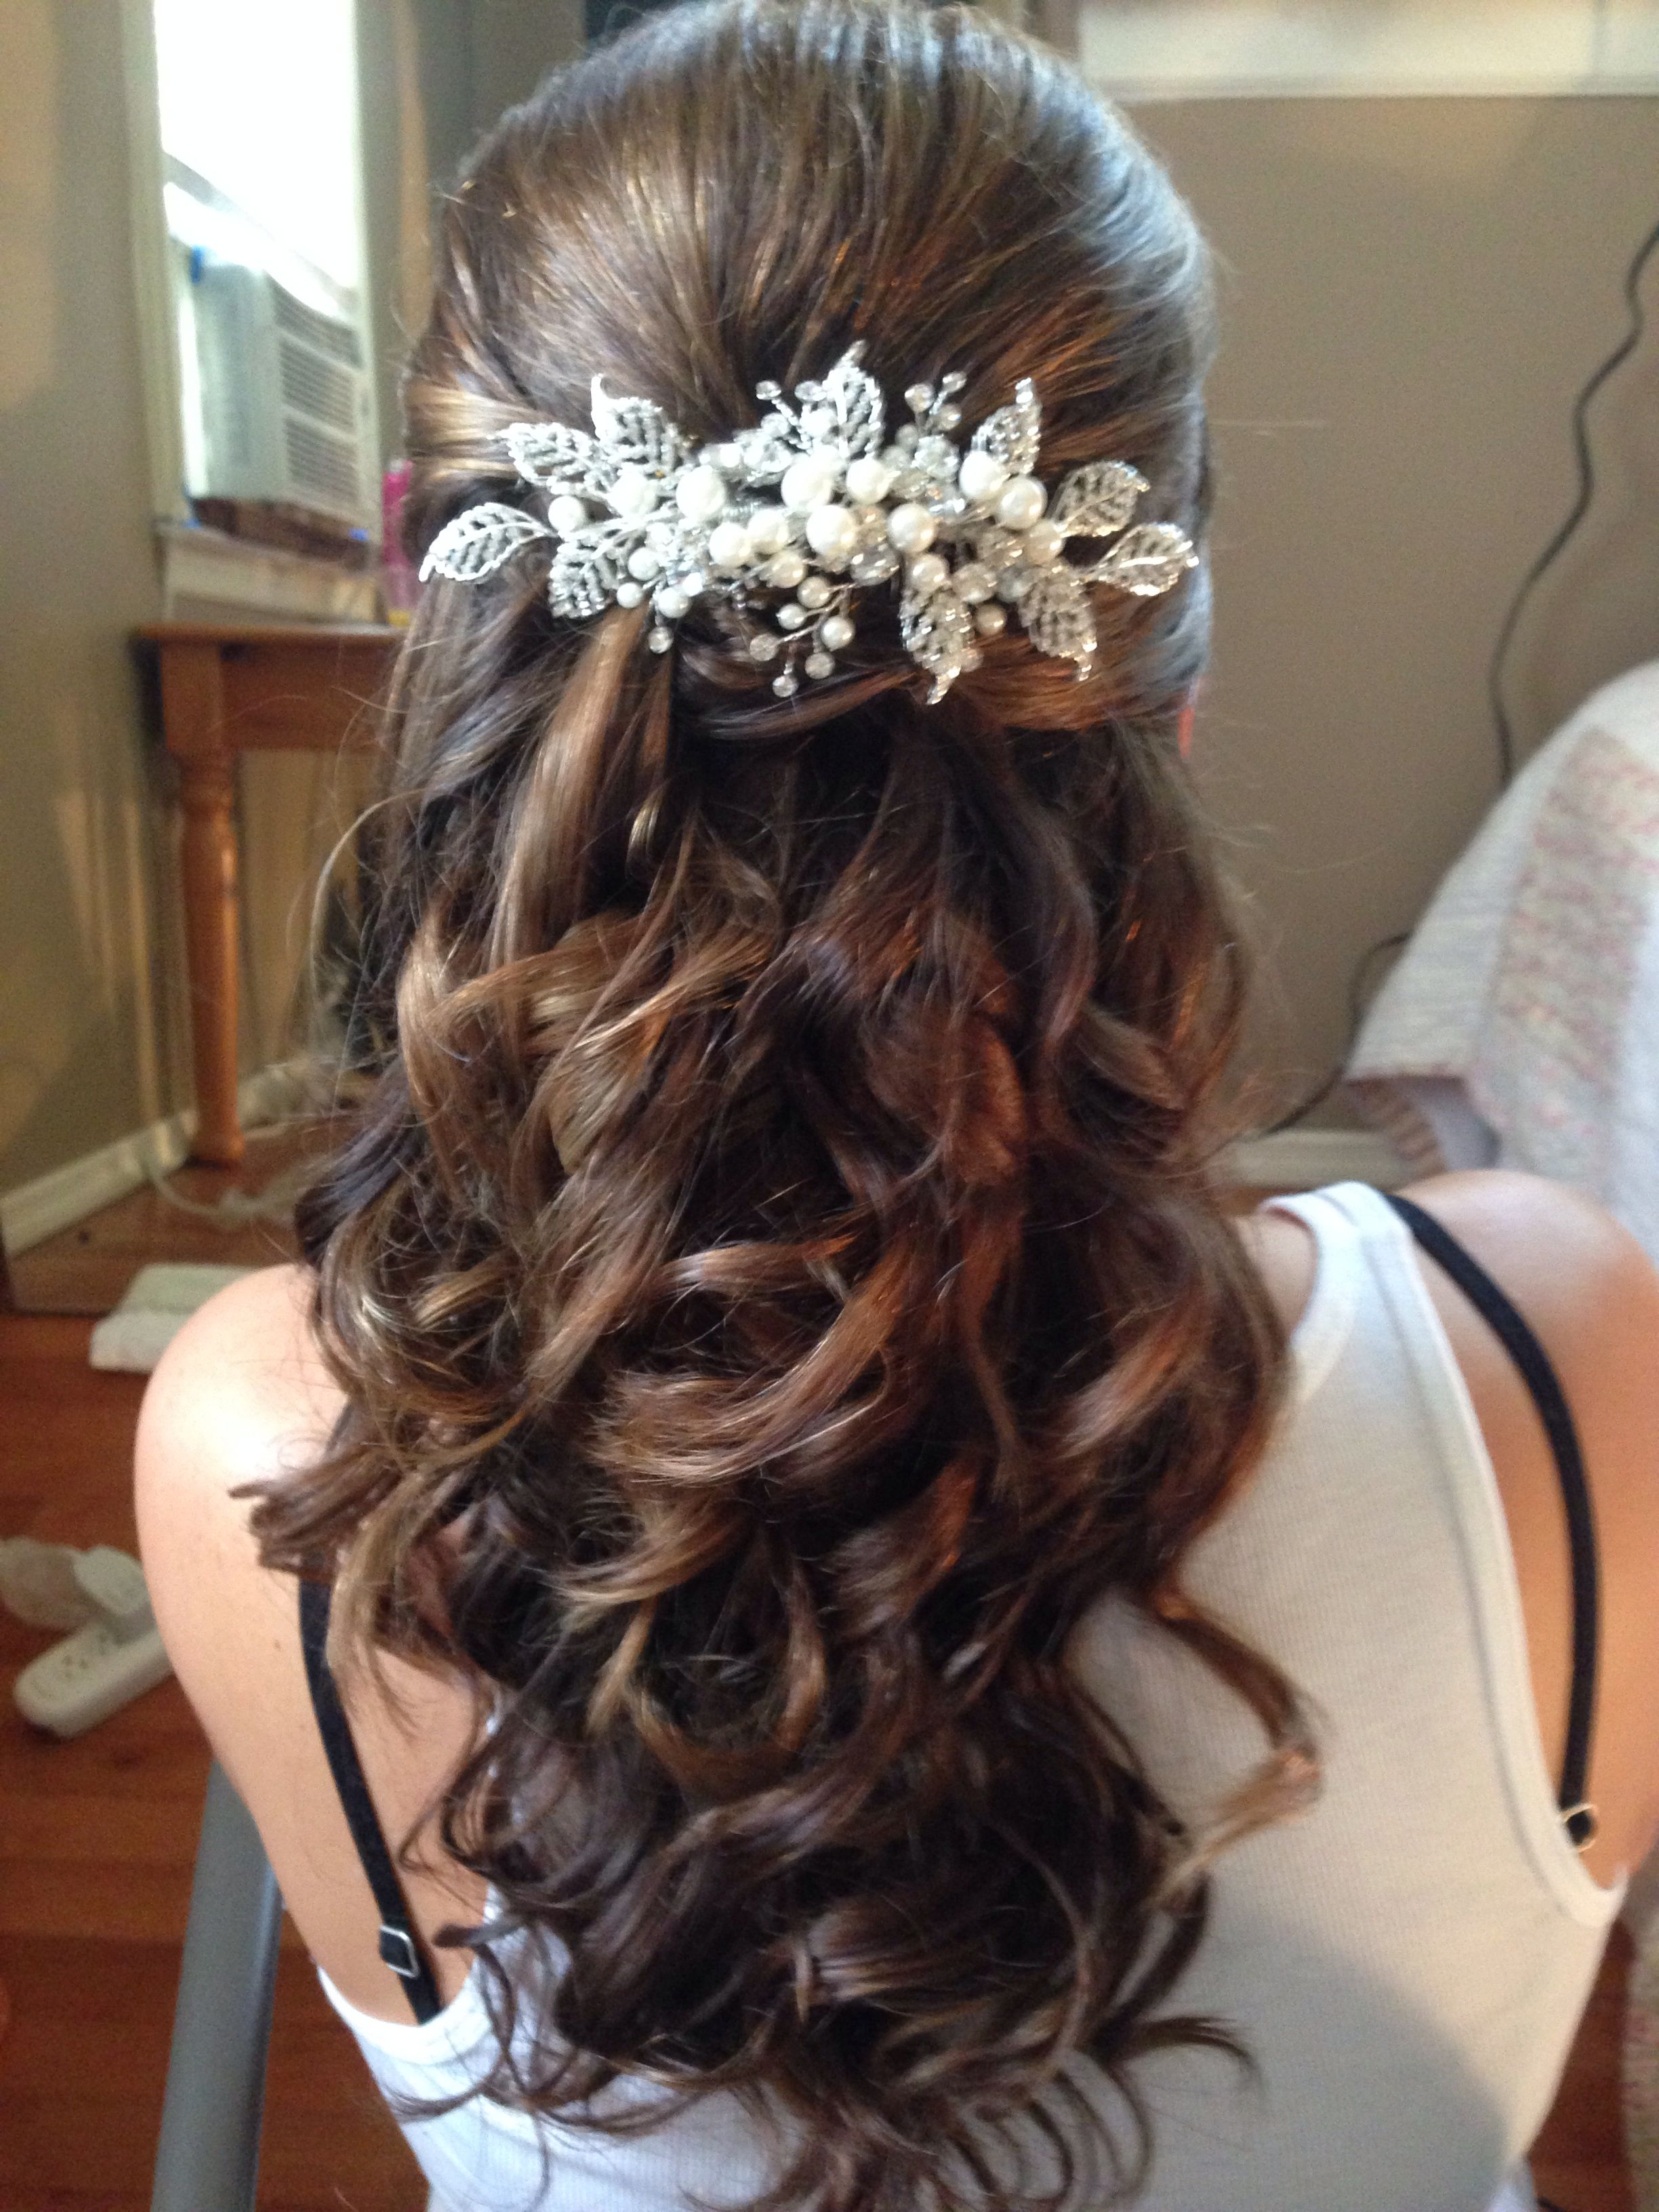 We love how this ornate hair piece helps create a simple and yet